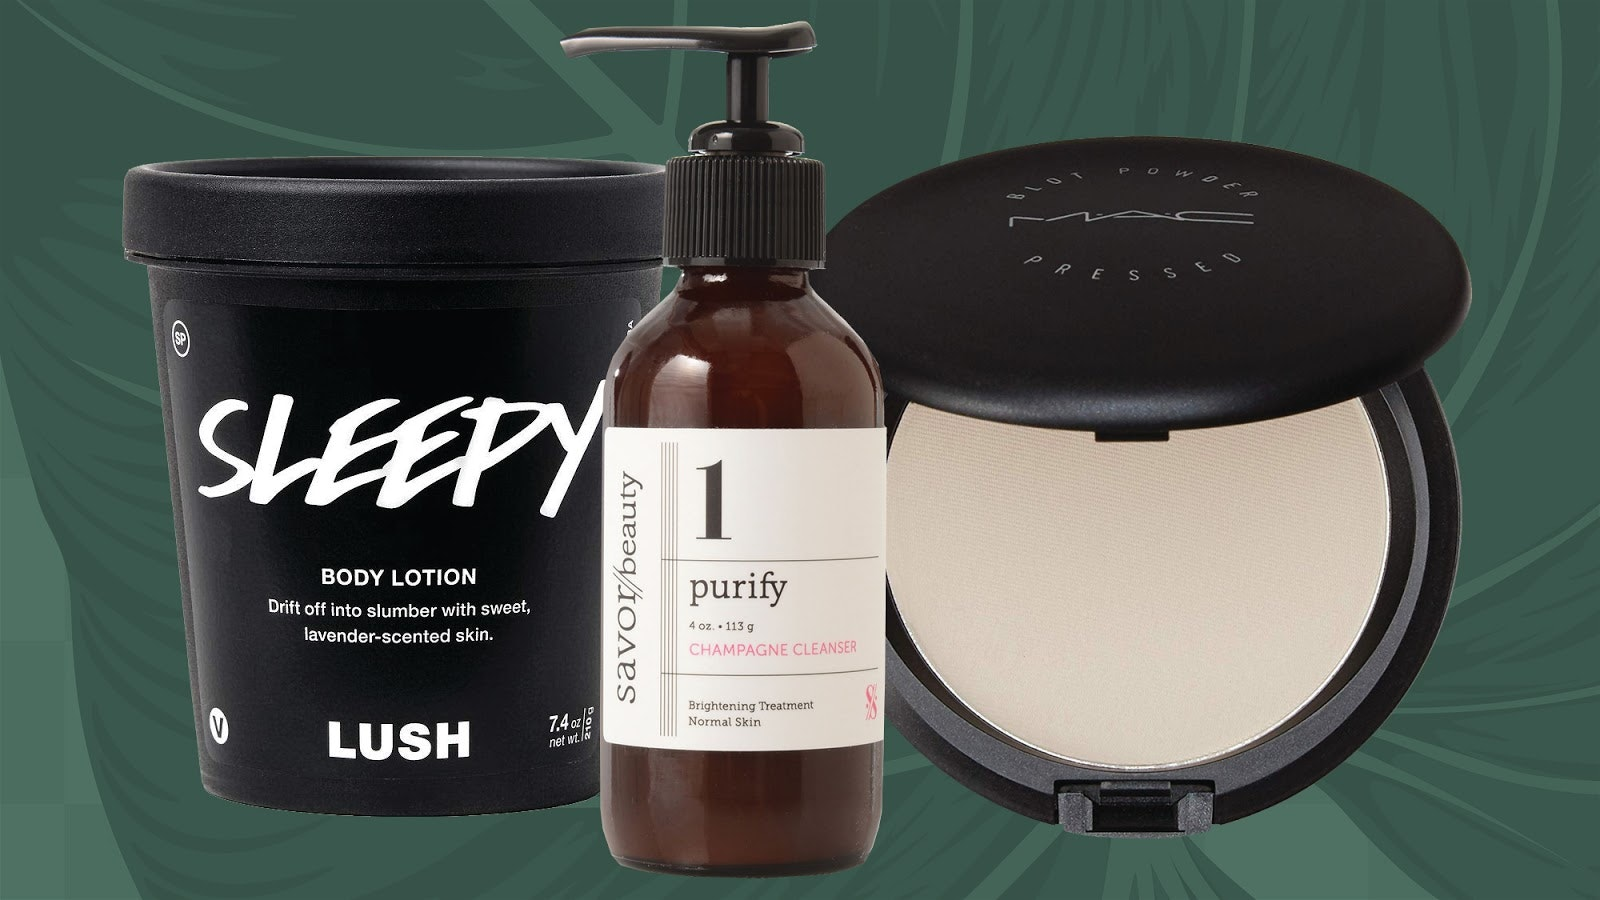 7 Beauty Brands That Will Help You Recycle Old Products and Make the World a Prettier Place